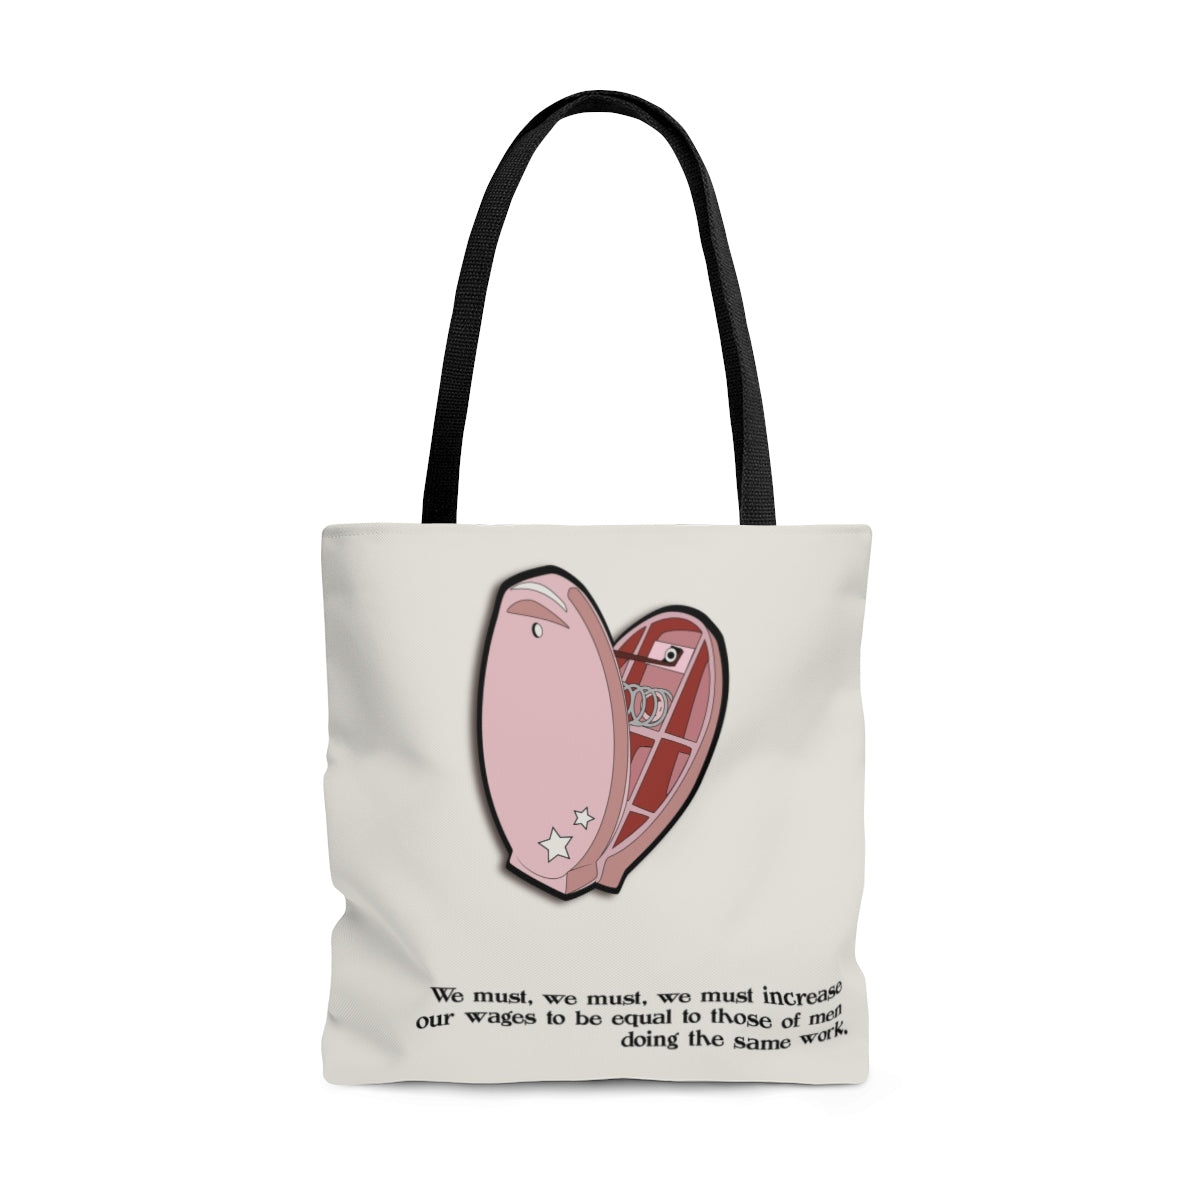 Women's Rights #1 Tote Bag